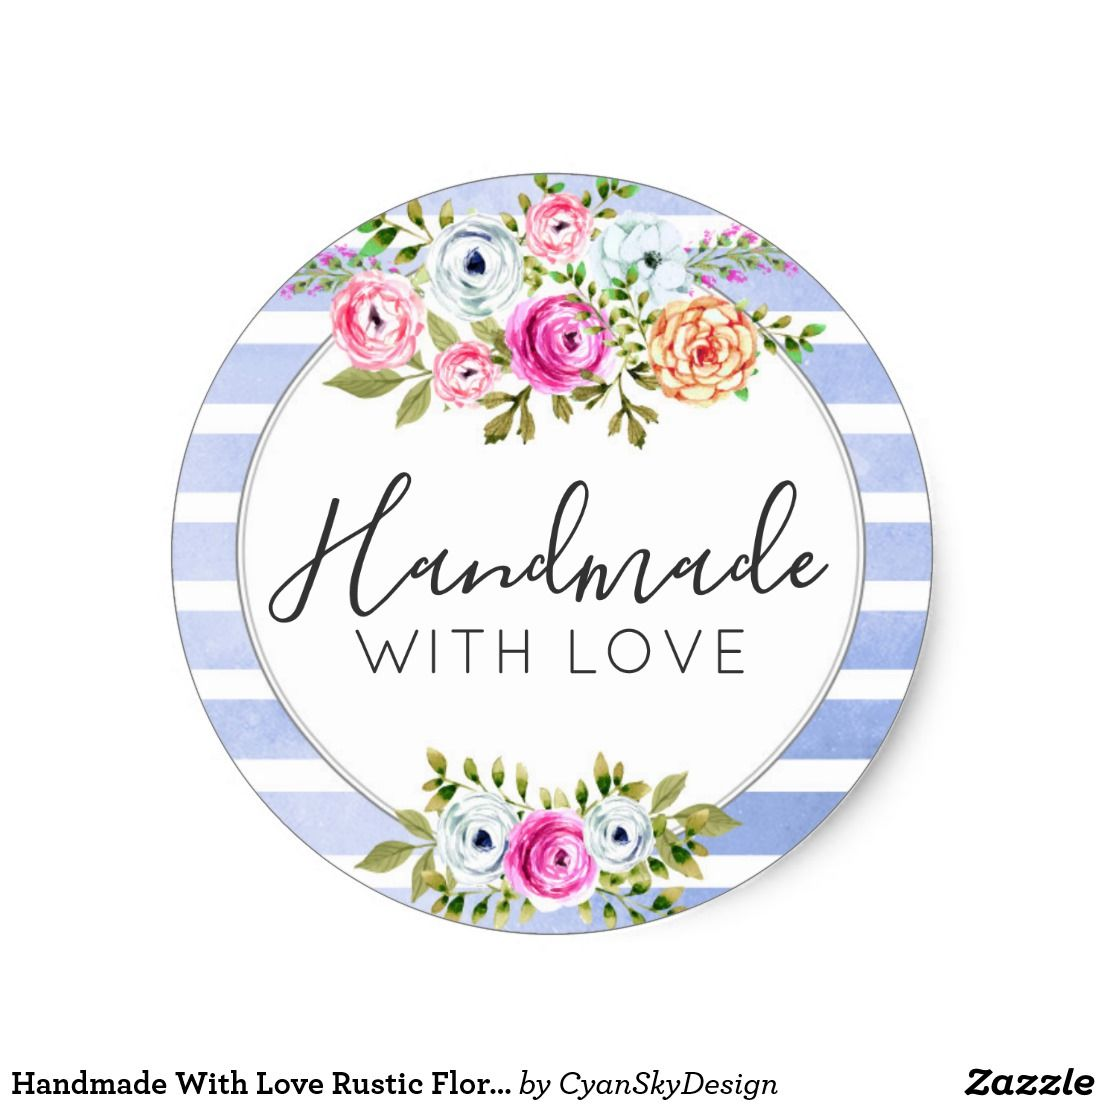 Handmade with love rustic floral watercolor modern classic round sticker by cyanskydesign on zazzle